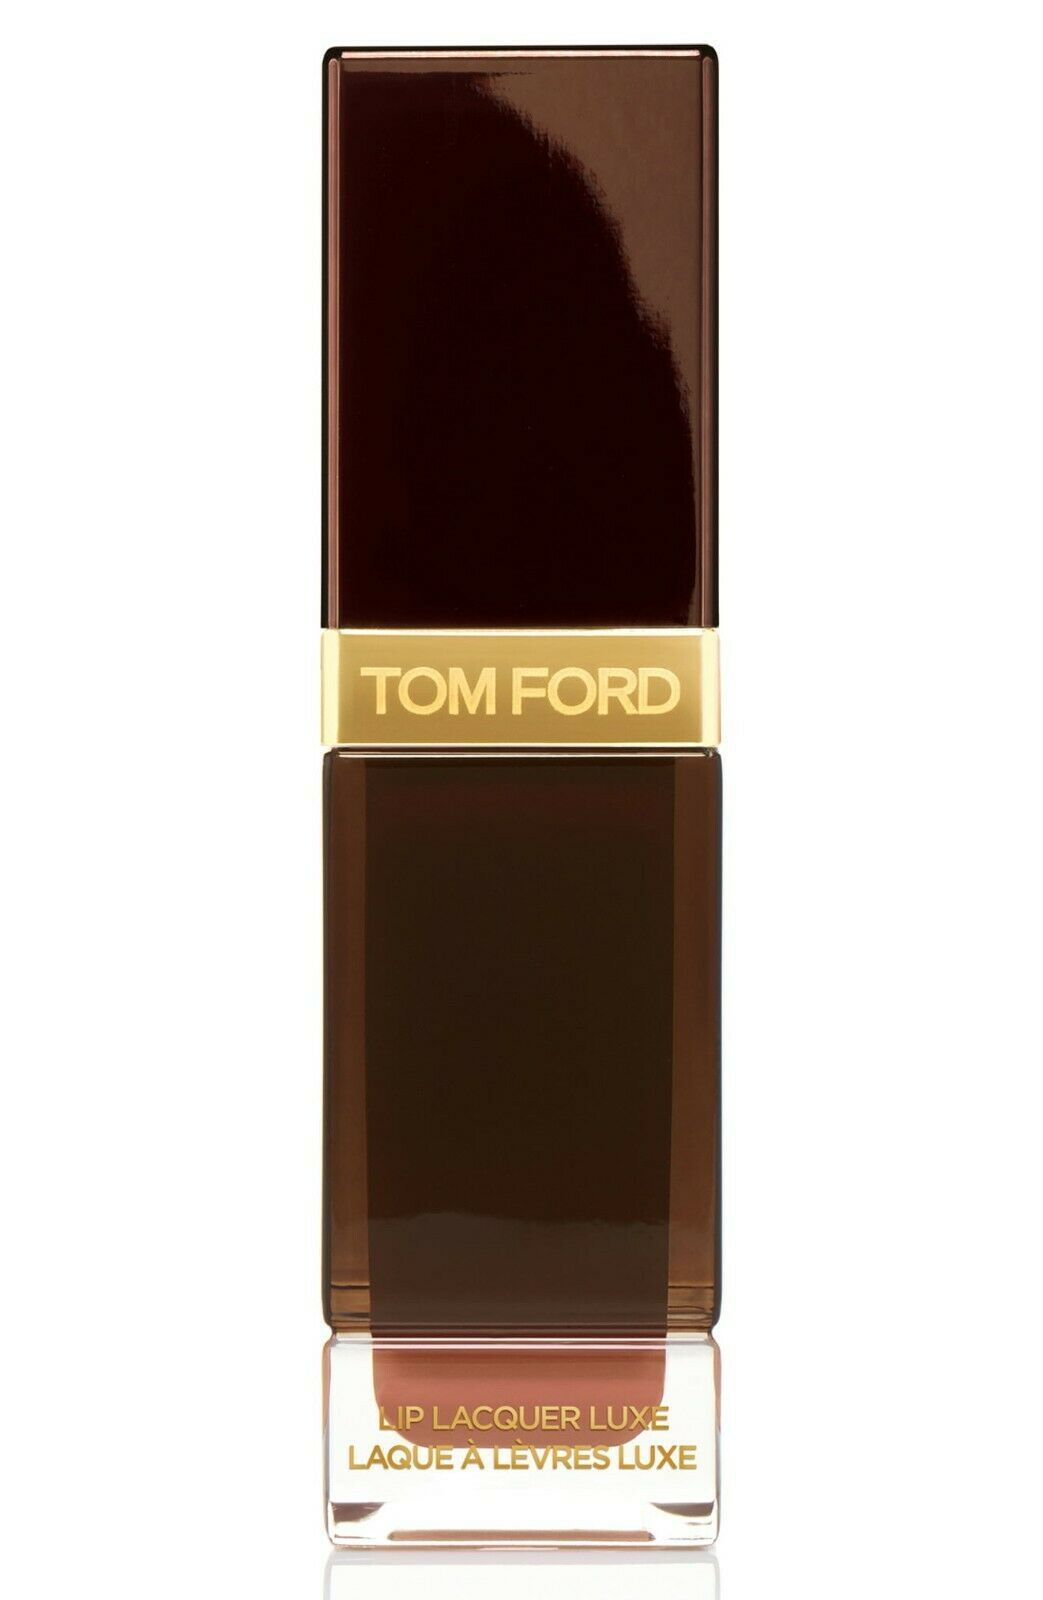 Primary image for Tom Ford Lip Lacquer Luxe. .2 oz New in box Pick a shade.